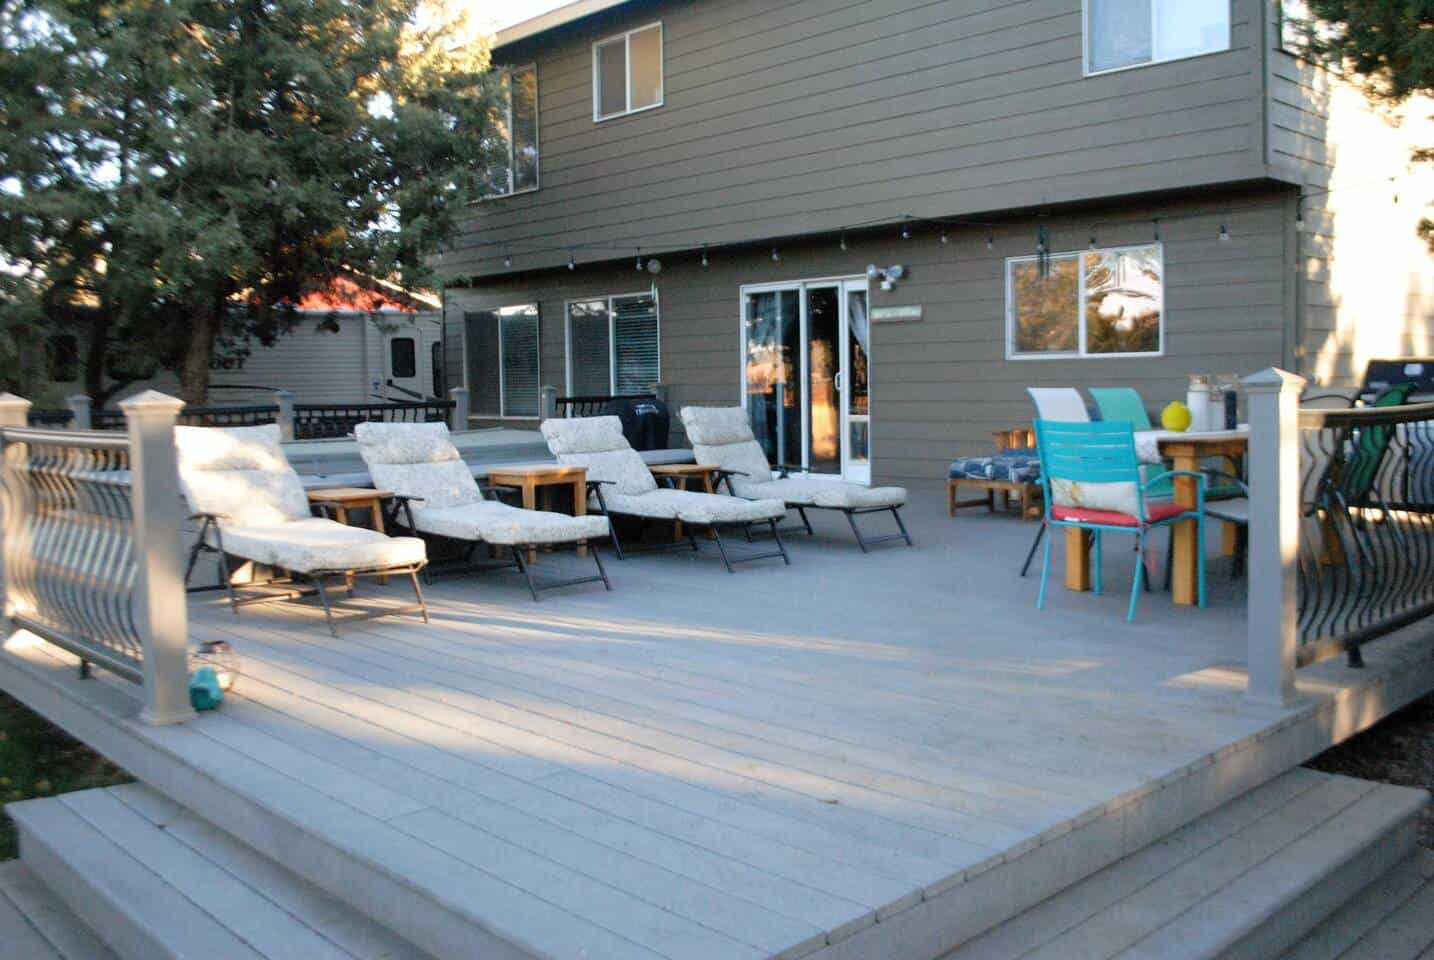 Image of Airbnb rental in Bend Oregon